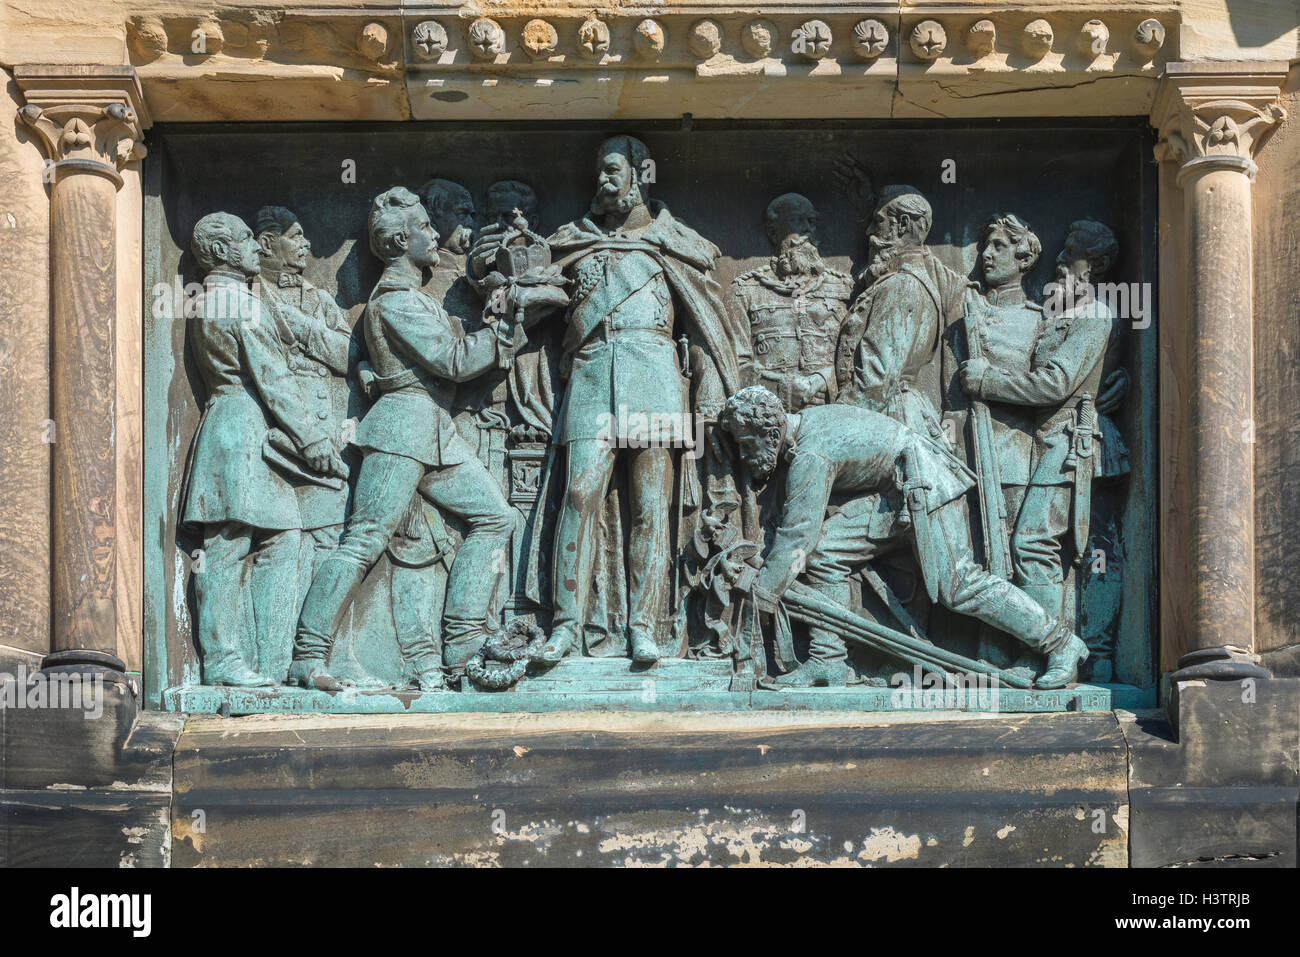 Monument, memorial, relief showing handover of the imperial crown to Wilhelm I, Magdeburg, Saxony-Anhalt, Germany - Stock Image